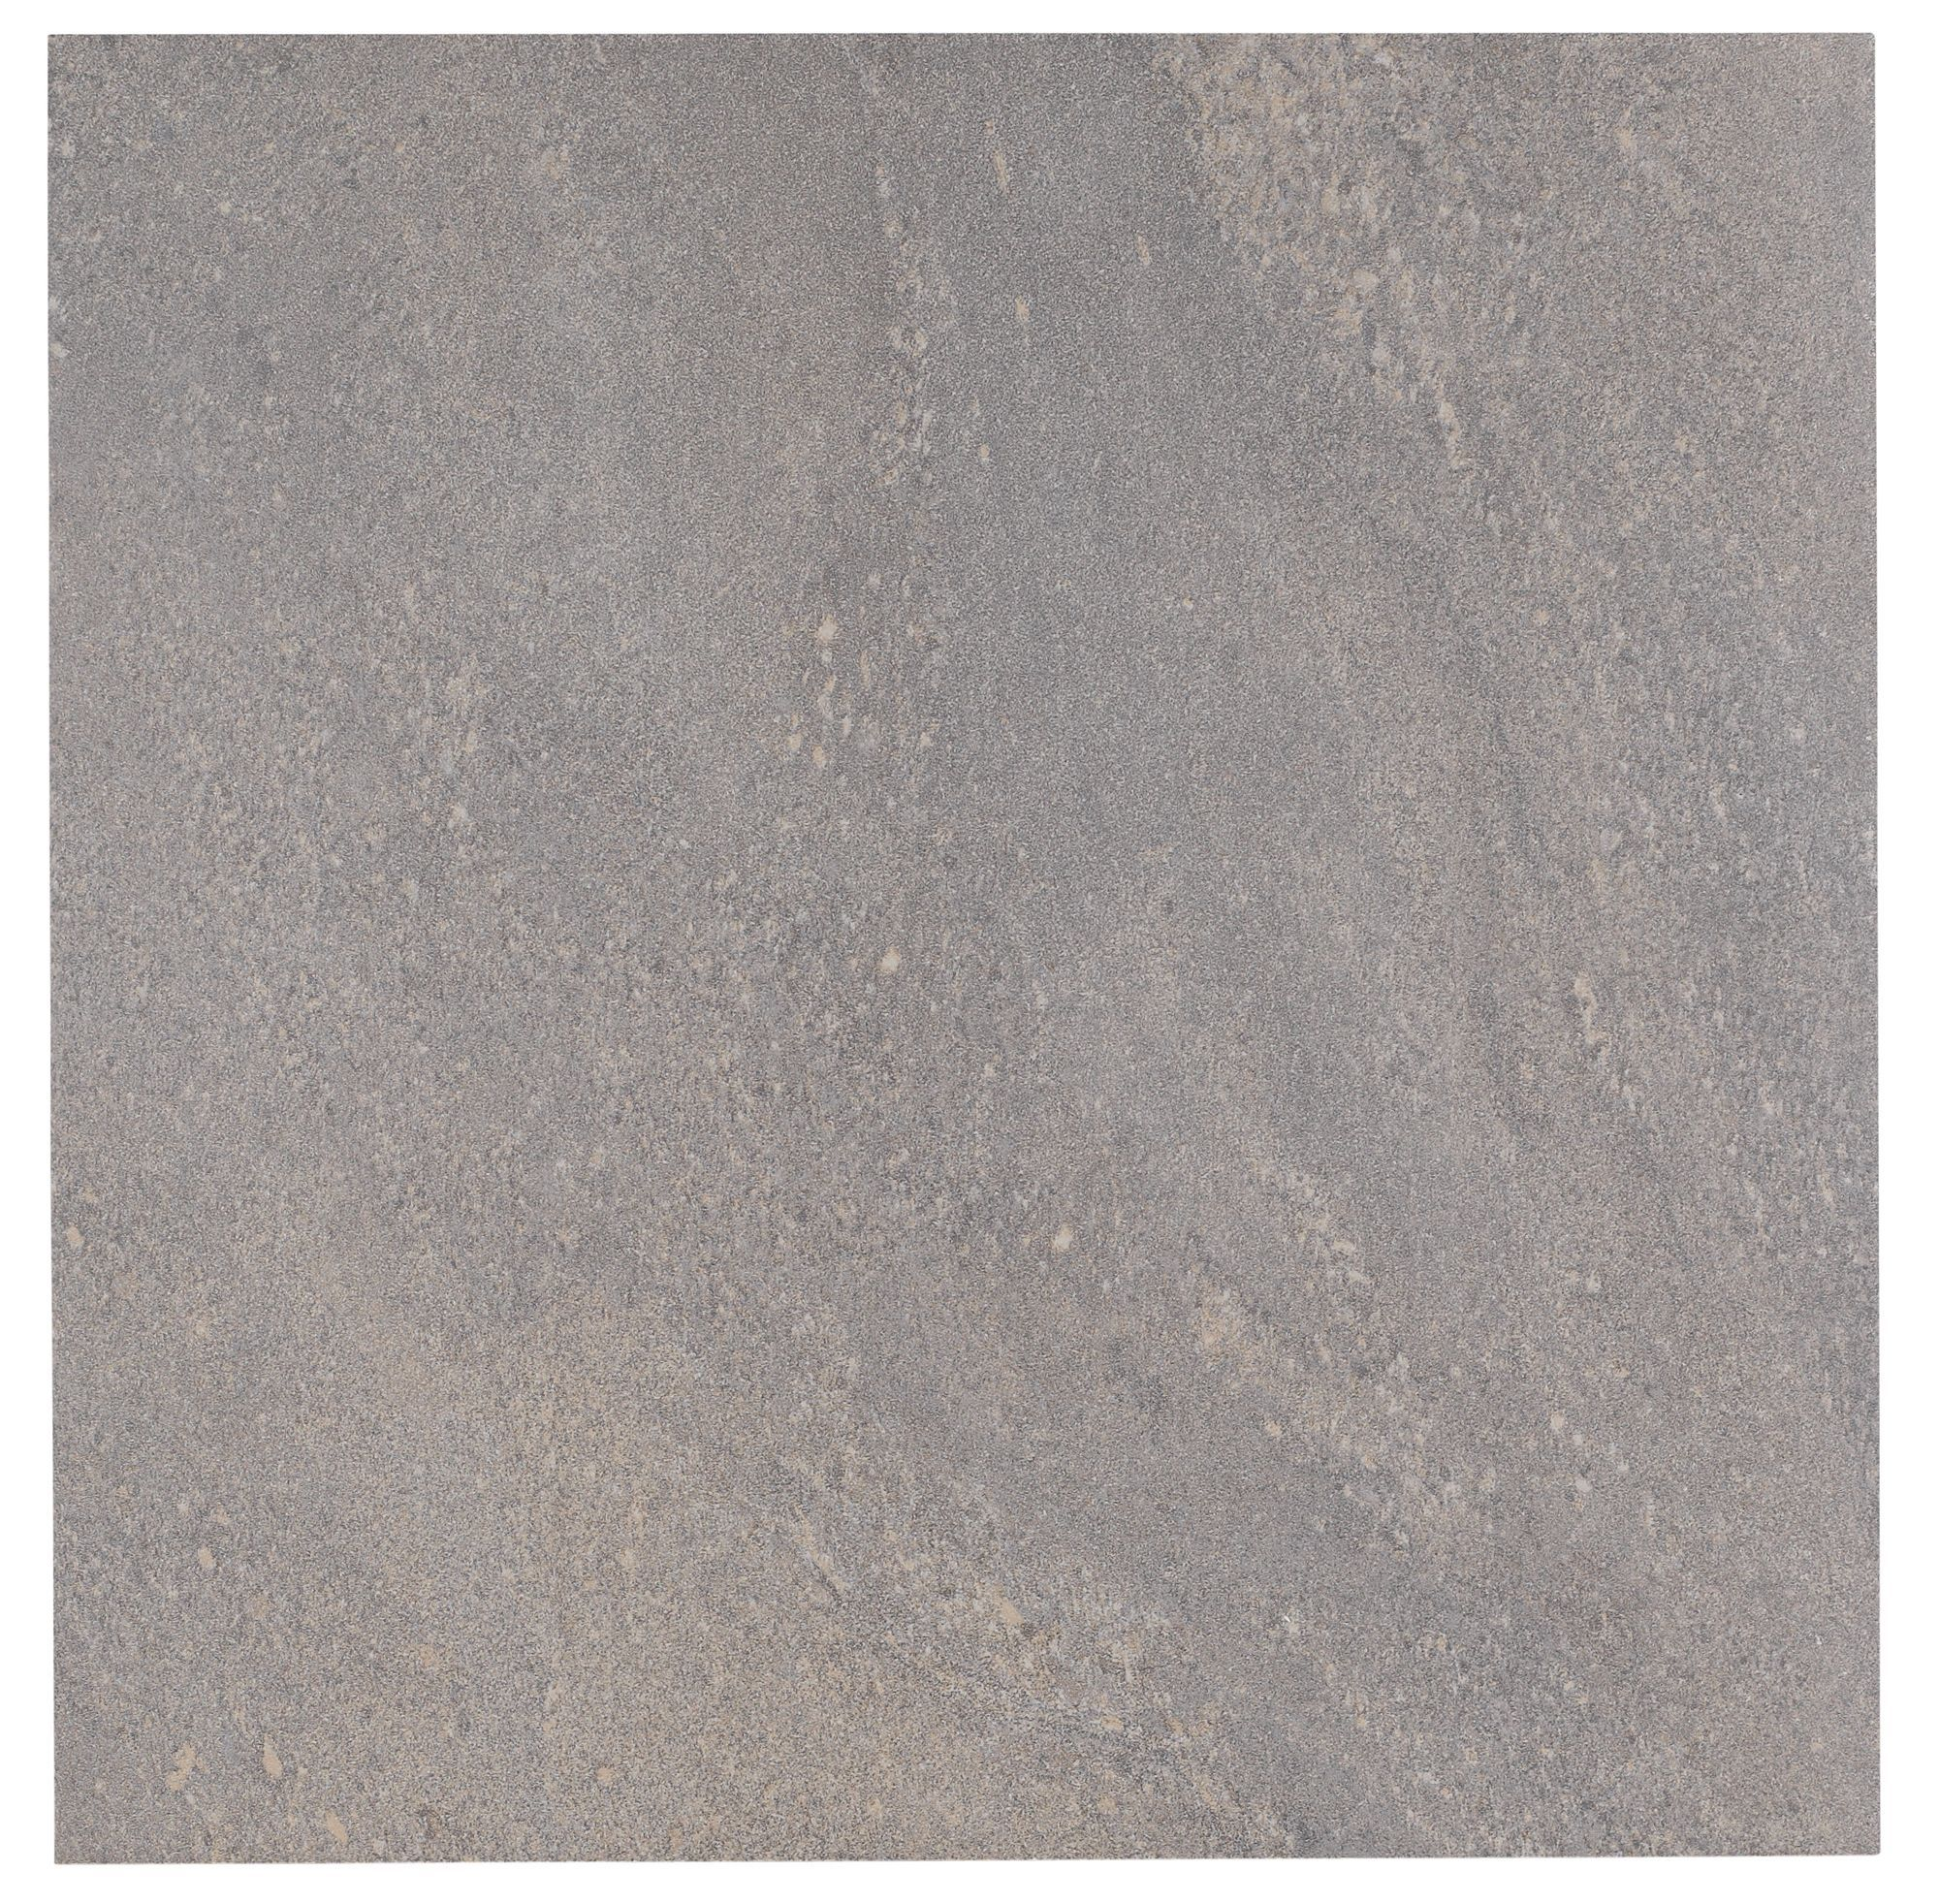 Antayla grey stone effect stone porcelain floor tile pack of 3 l 600mm w 600mm departments Ceramic stone tile